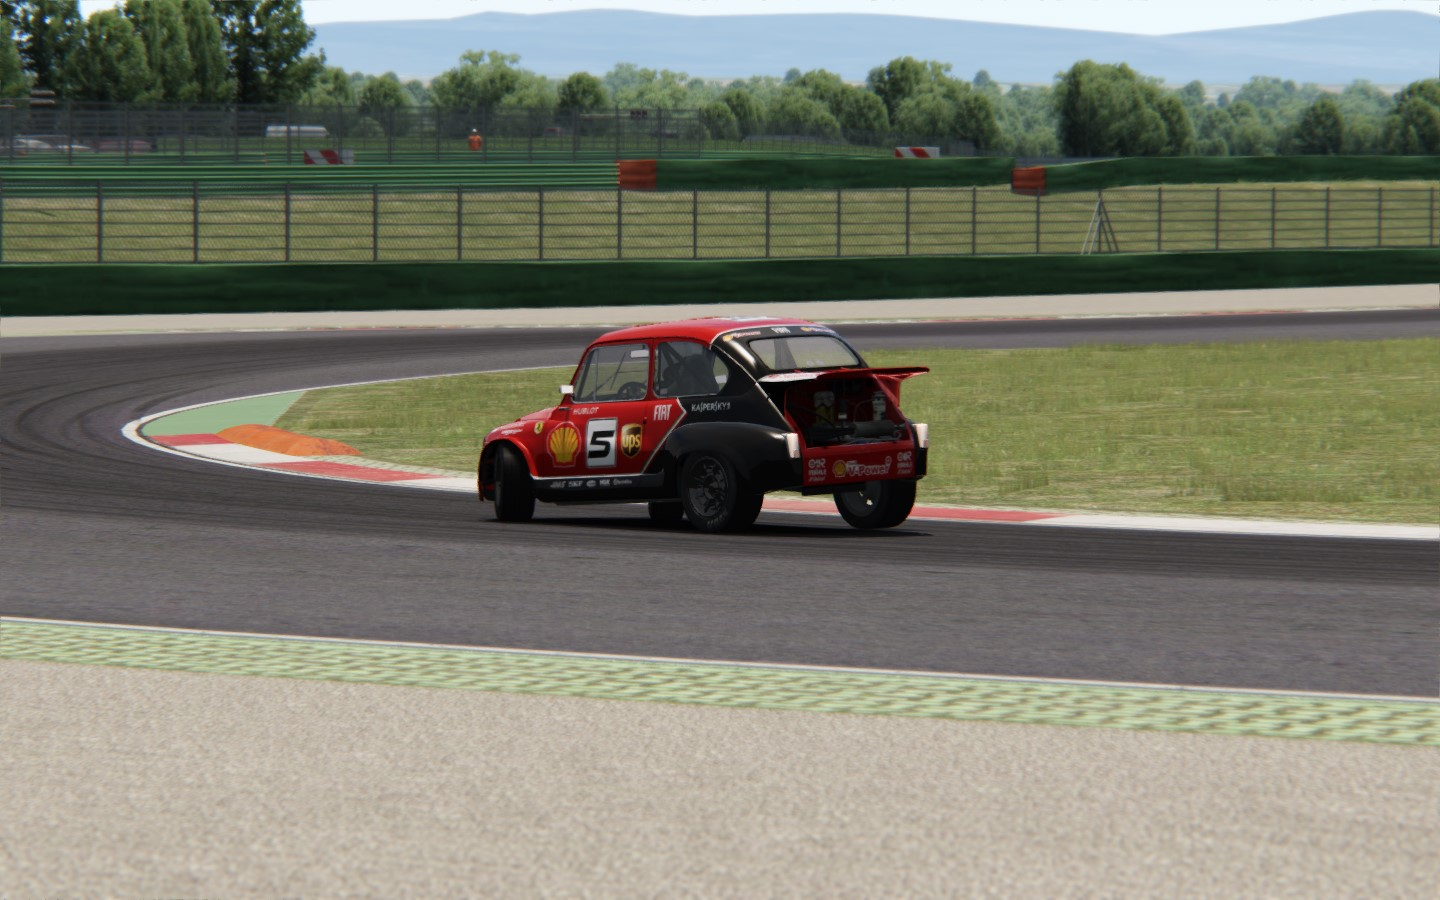 Screenshot_abarth_1000tc_vallelunga_17-1-116-23-34-26.jpg